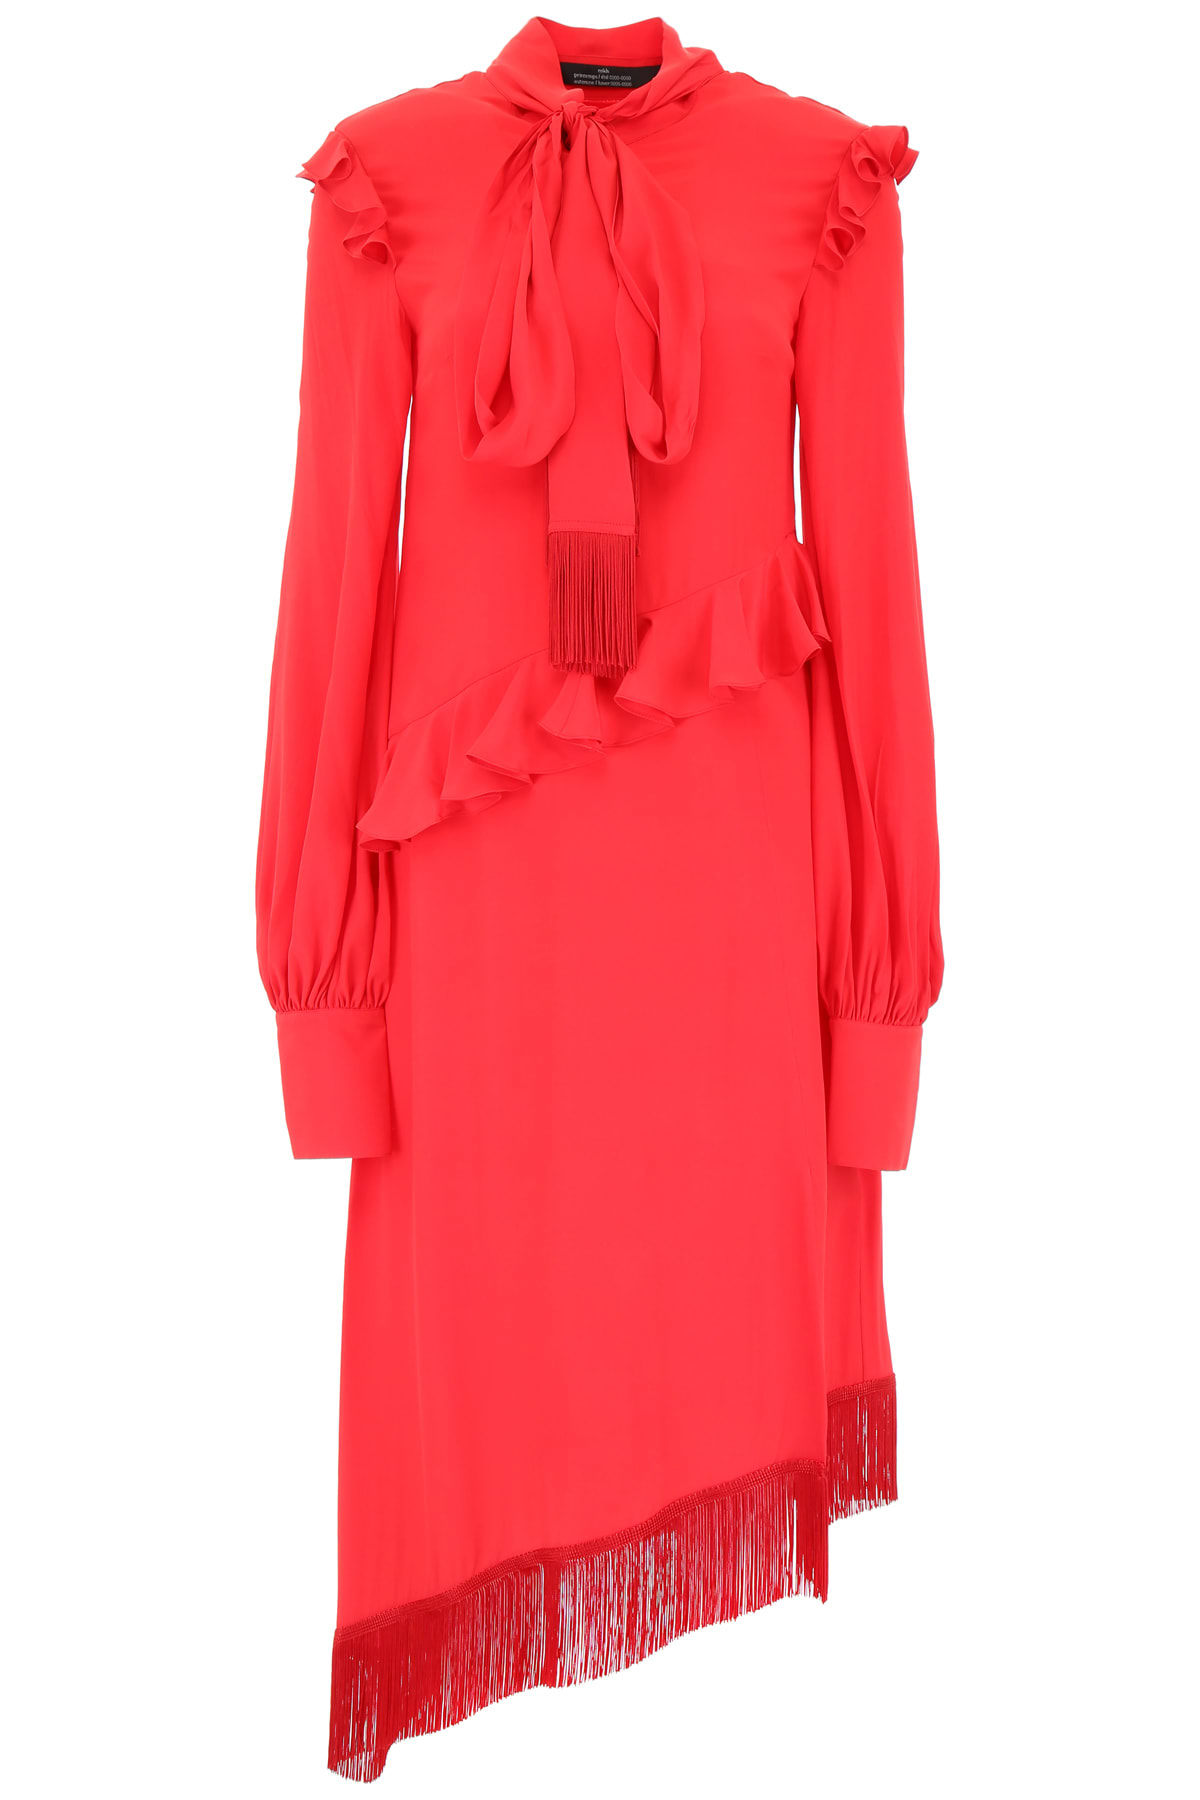 Rokh Asymmetric Ruffled Dress